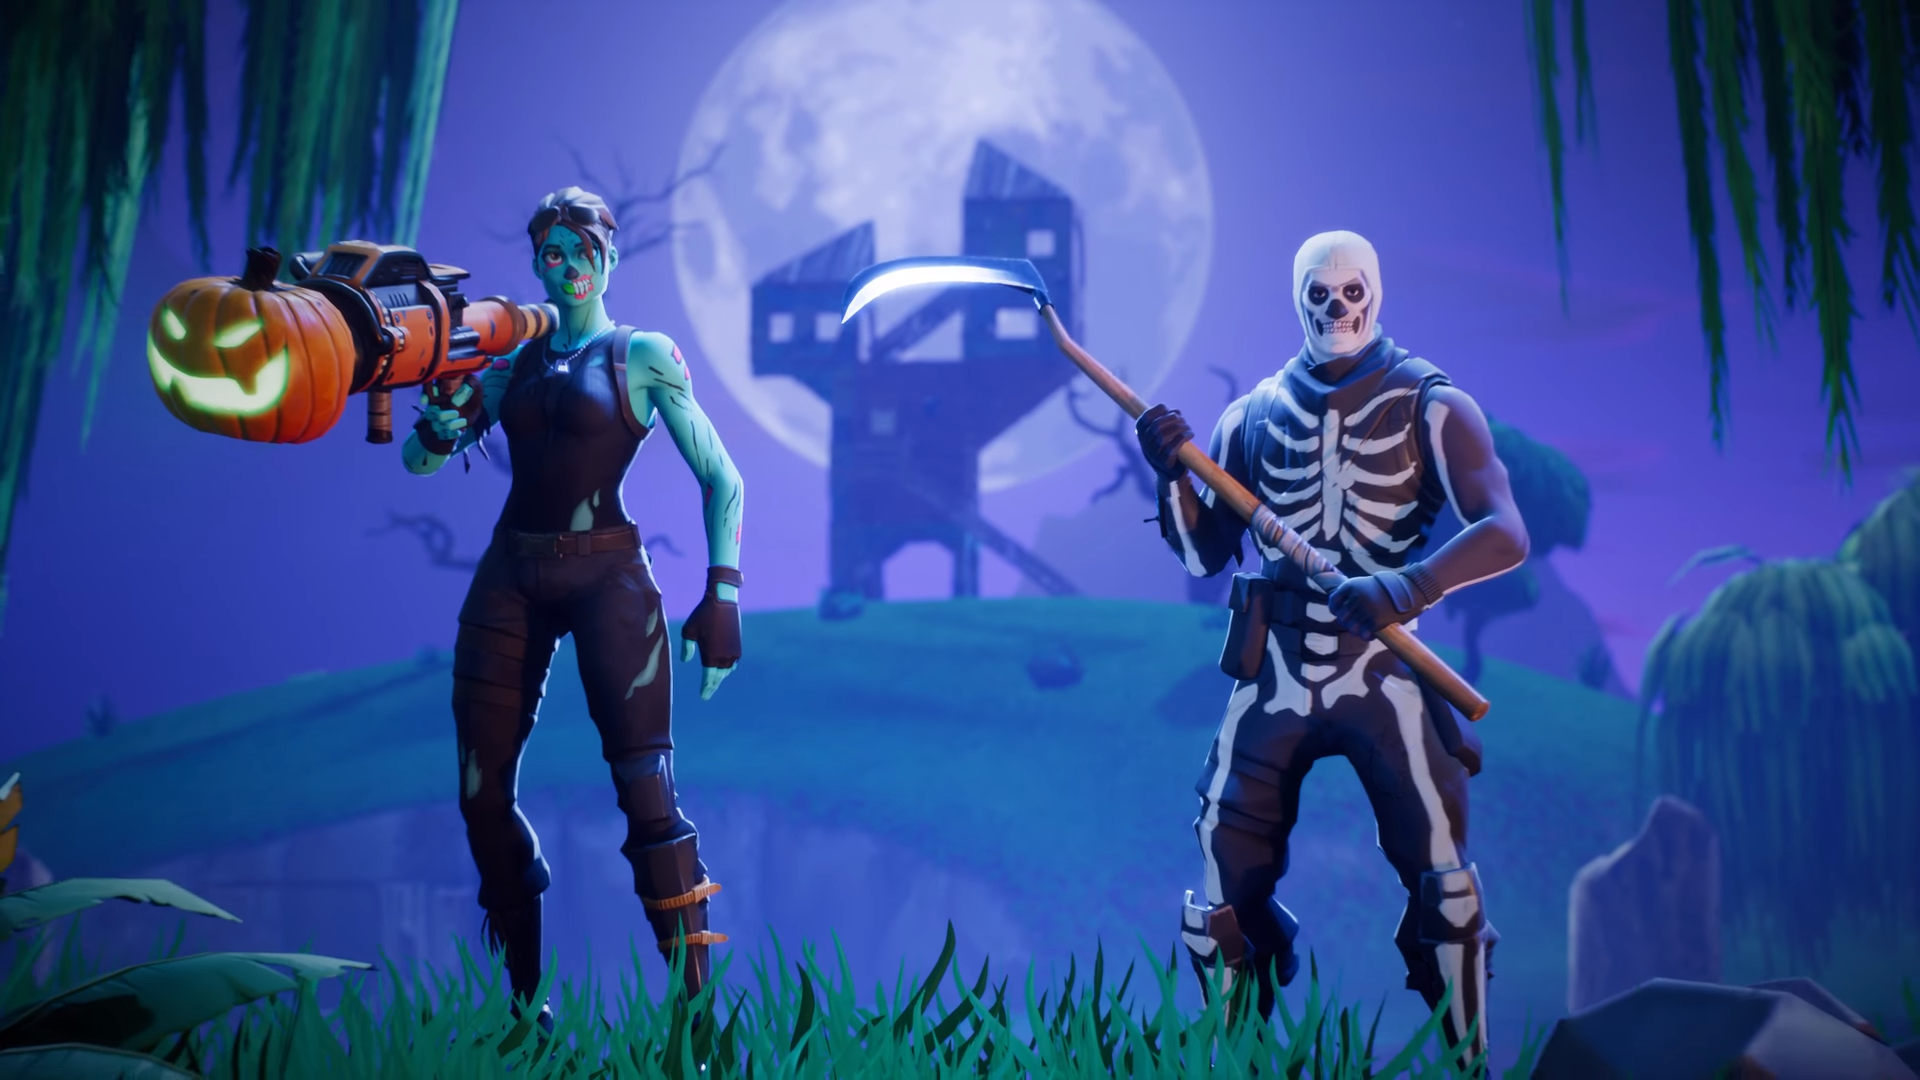 Desktop Wallpaper 2018 Video Game Fortnite Art Hd: Desktop Wallpaper Fortnite Battle Royale, Video Game